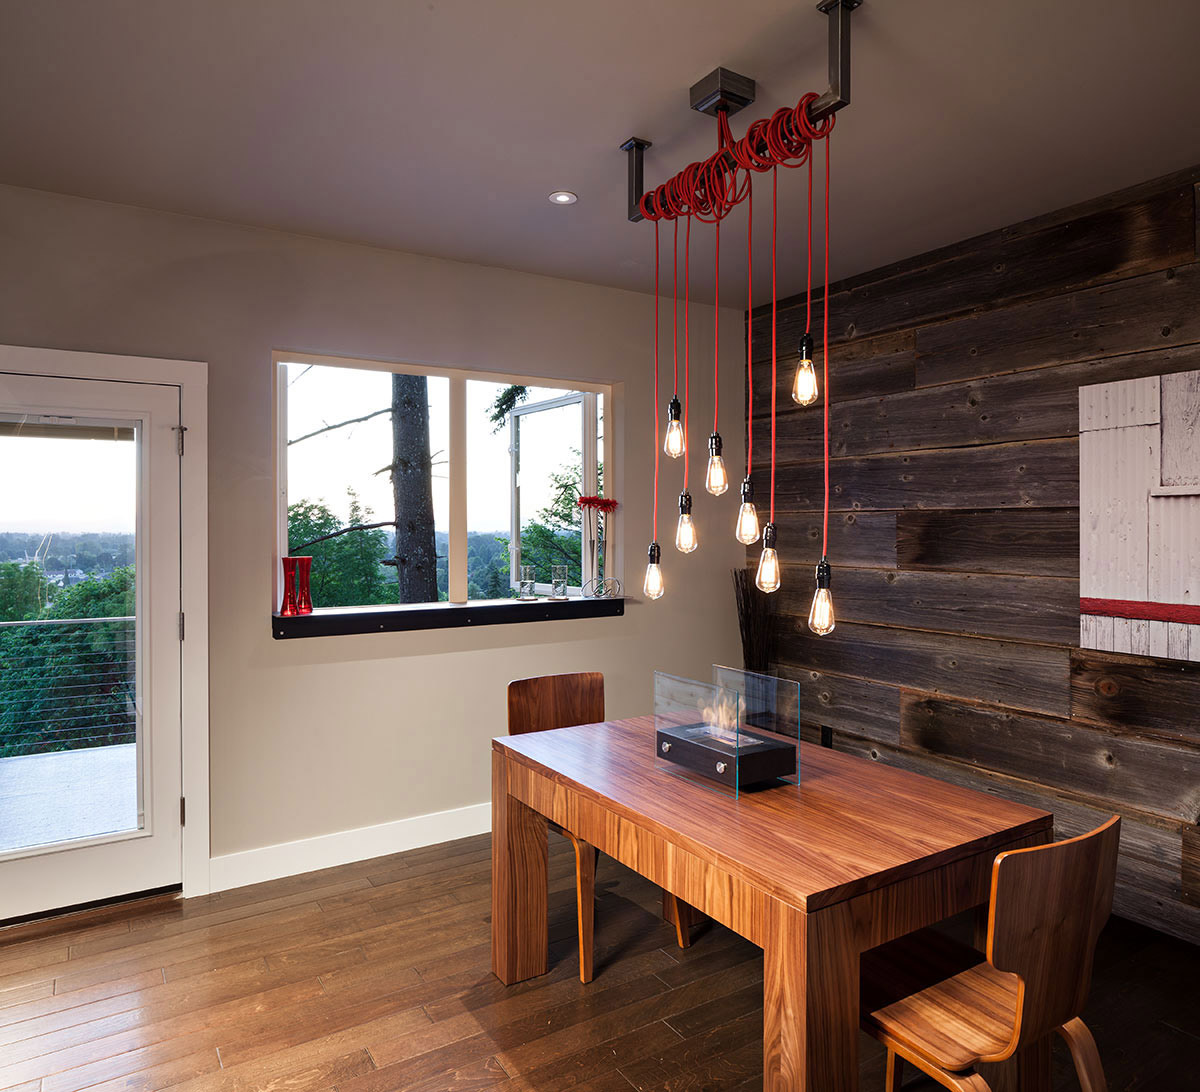 Dining, Lighting, Rustic Wall, Modern Home in Eugene, Oregon by Jordan Iverson Signature Homes